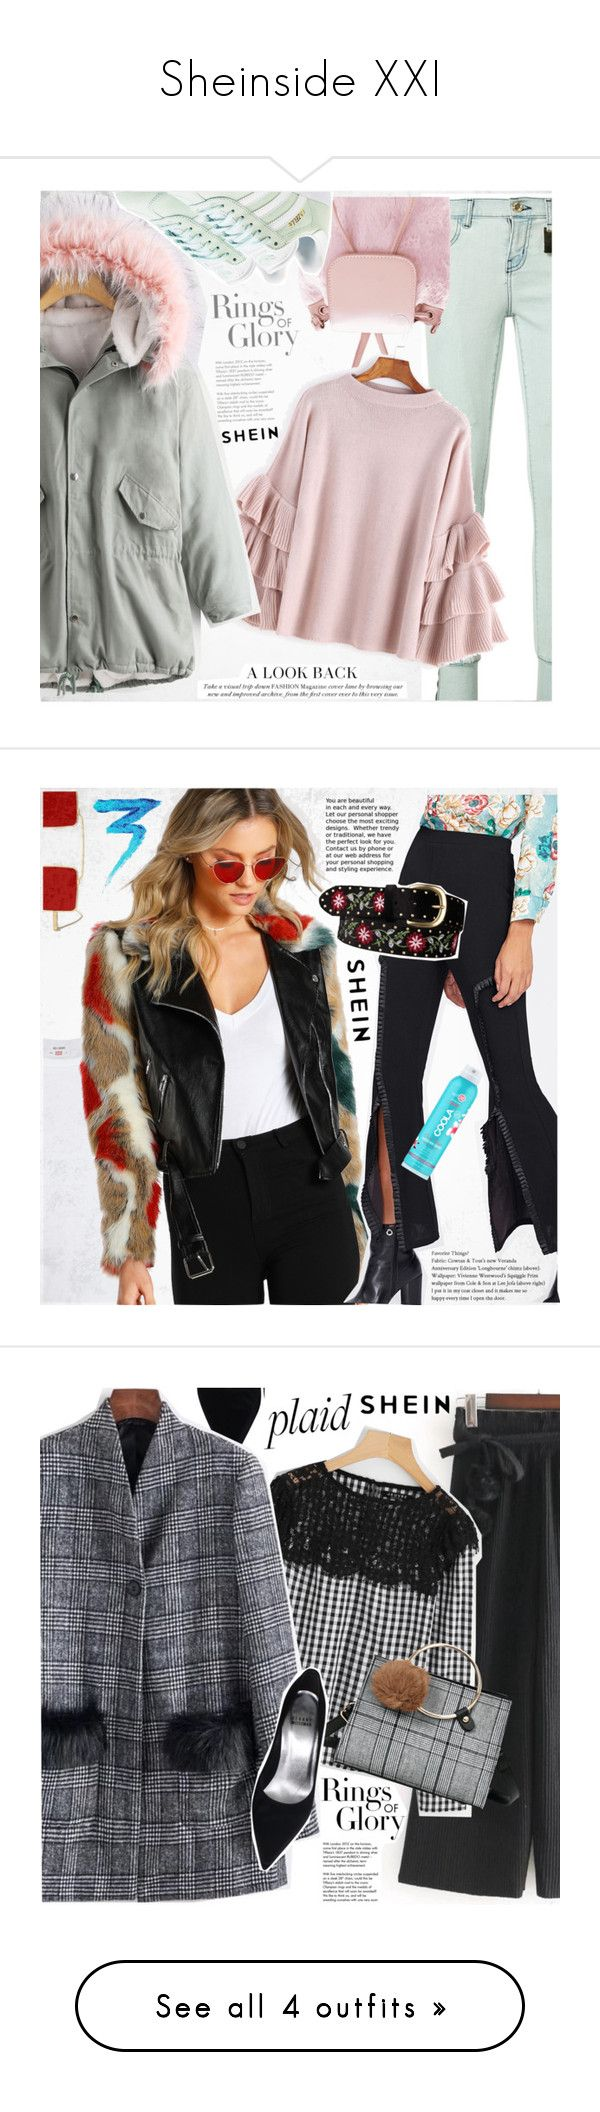 """""""Sheinside XXI"""" by vanjazivadinovic ❤ liked on Polyvore featuring Sheinside, Tiffany & Co., Thomas Wylde, adidas Originals, plaid, stripedpants, polyvoreeditorial, RE/DONE, COOLA Suncare and Givenchy"""